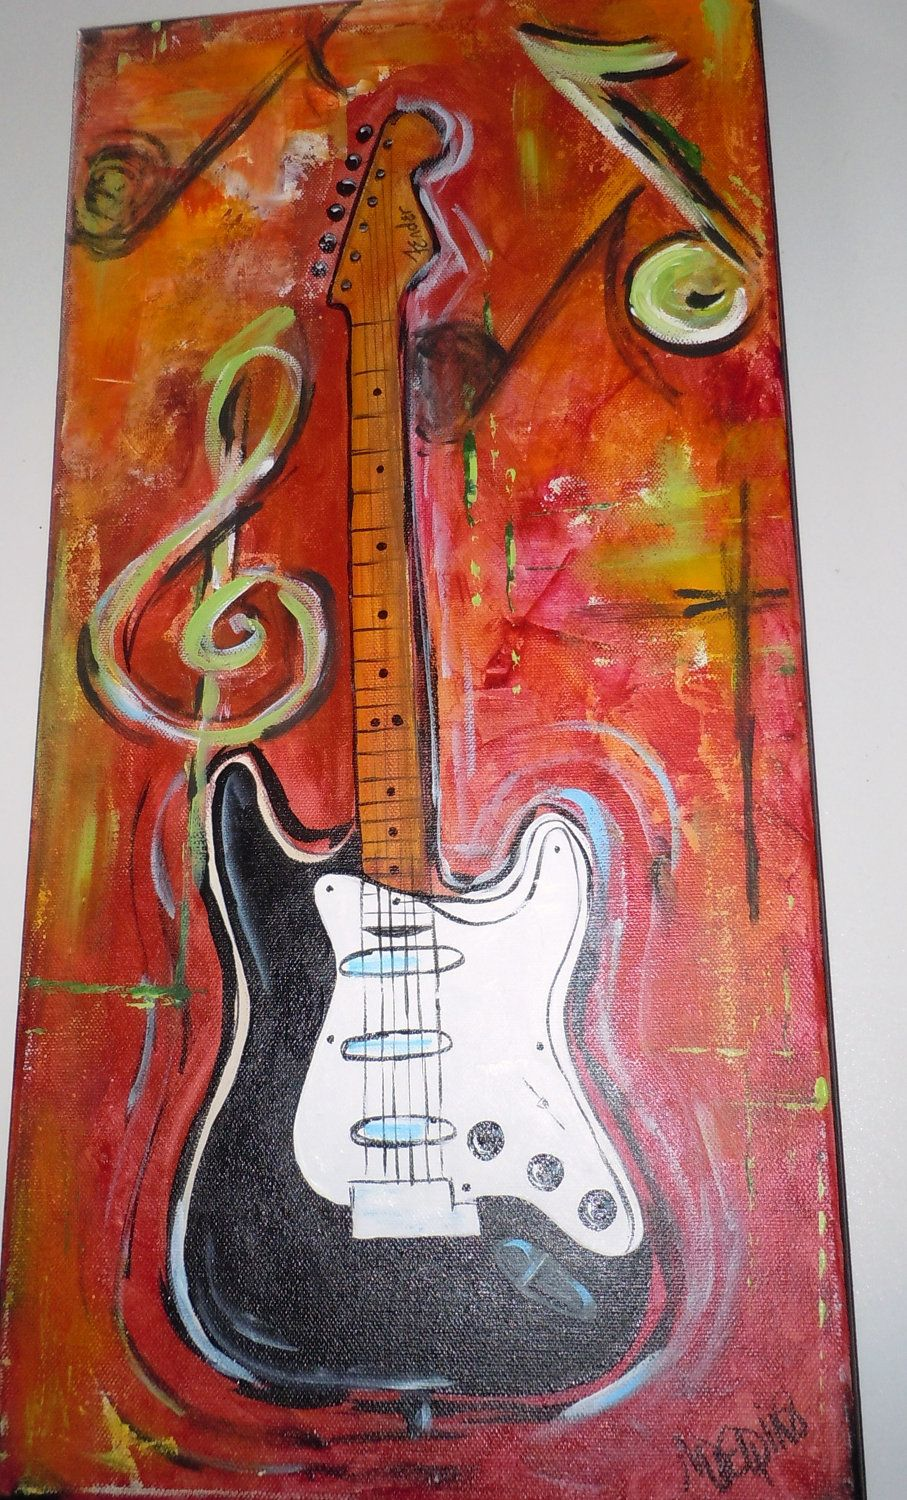 electric guitar painting fender original10 x 20 inch bold color canvas etsy to. Black Bedroom Furniture Sets. Home Design Ideas